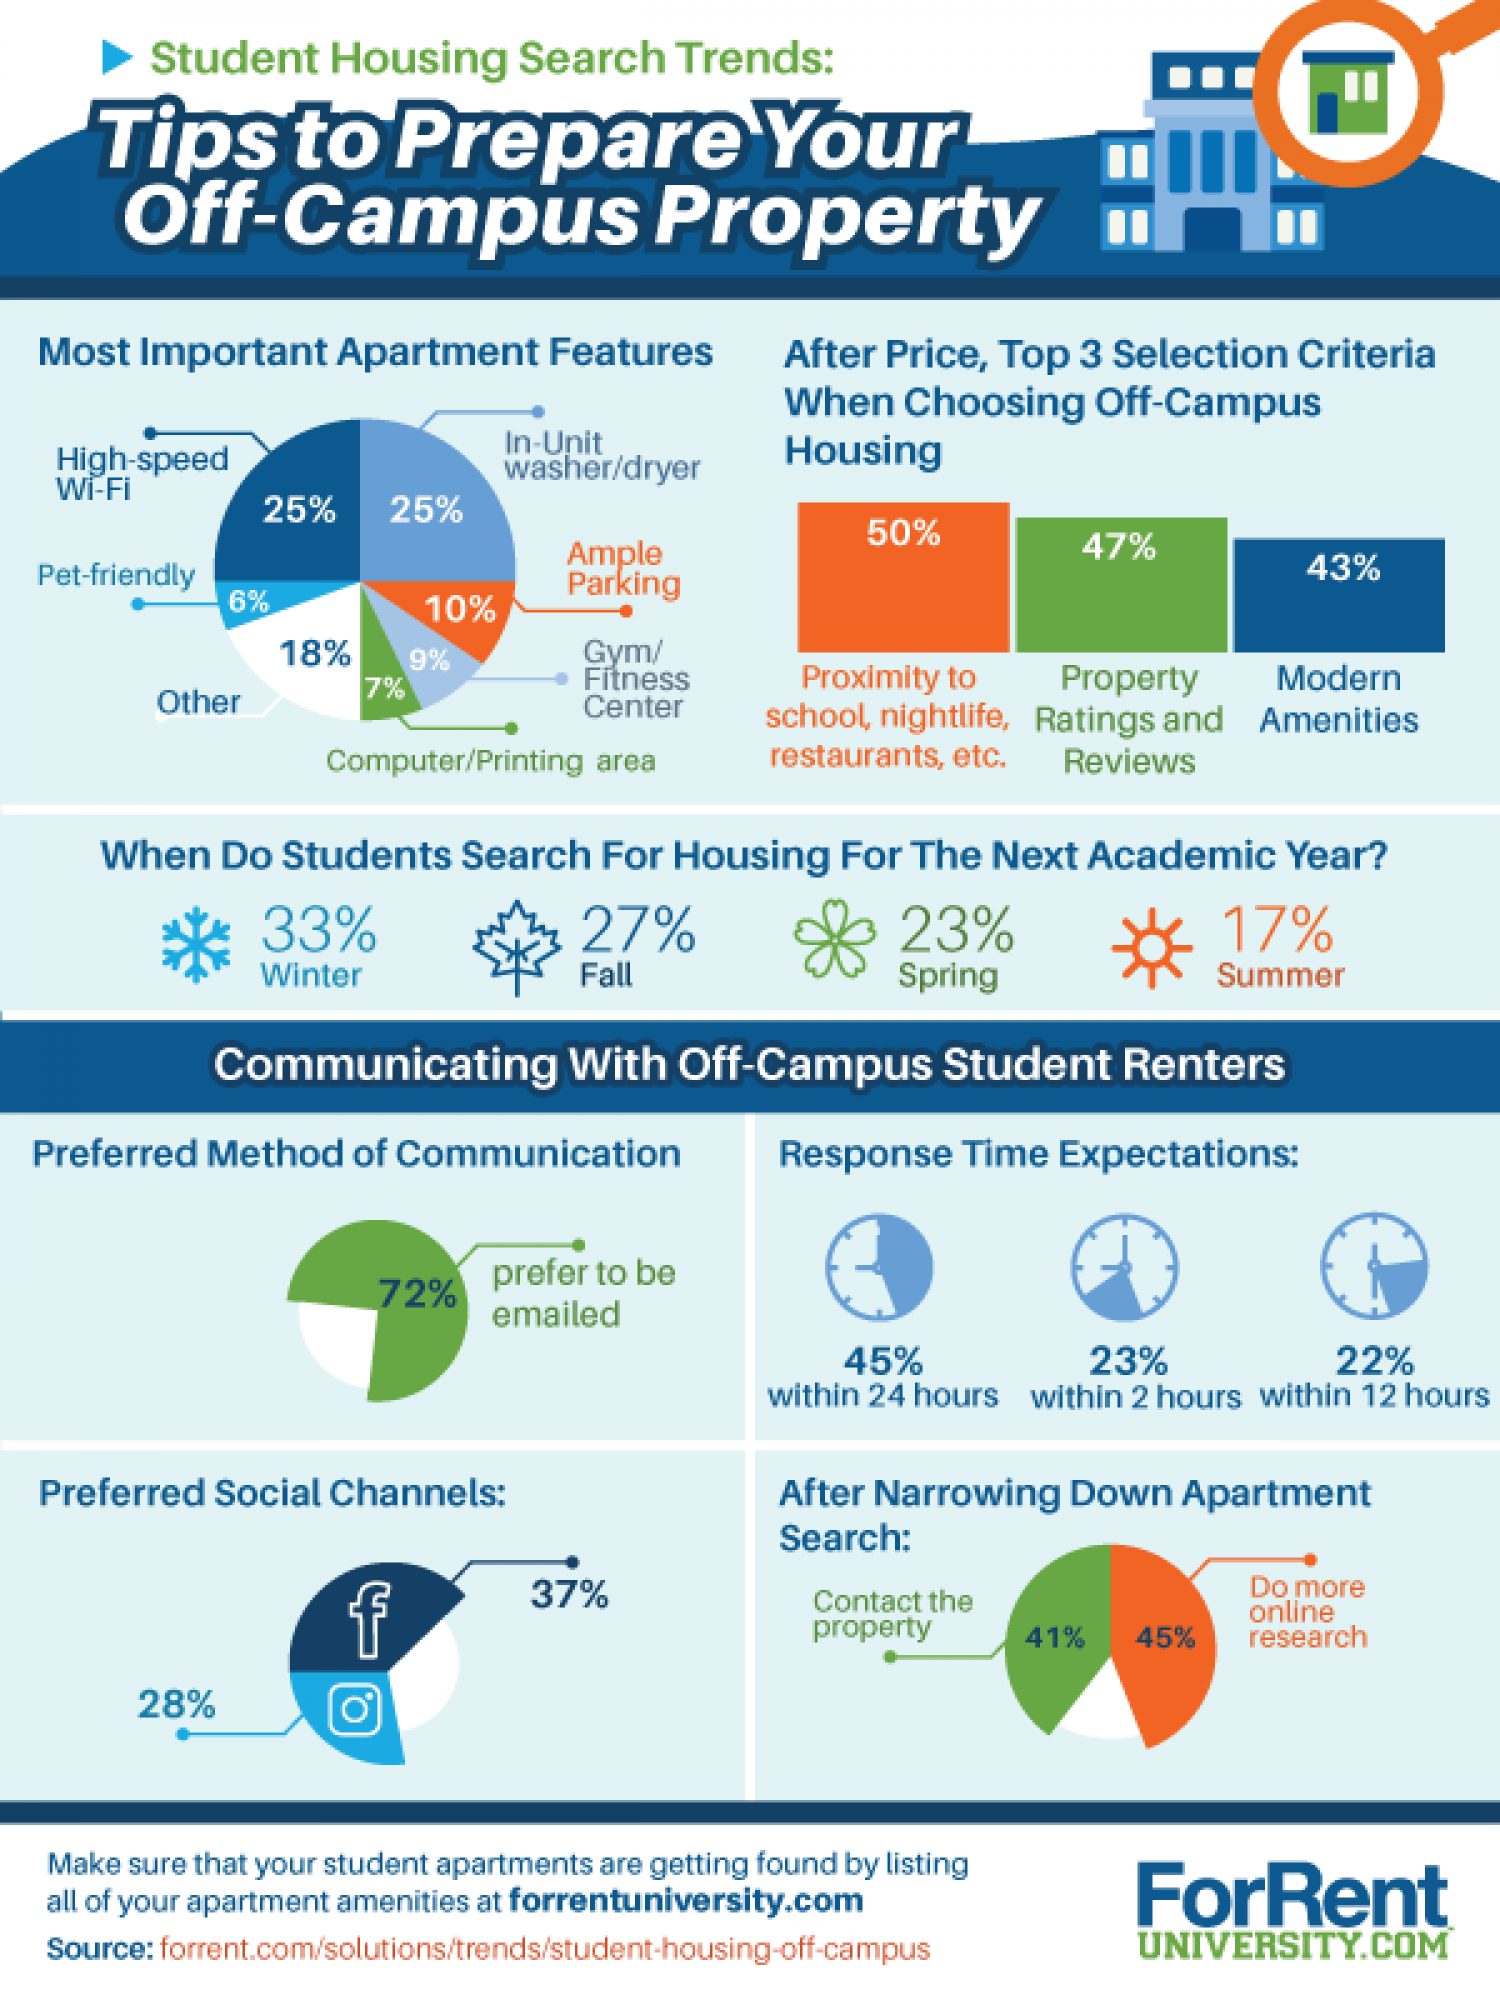 Student Housing Search Trends: Tips to Prepare Your Off-Campus Property Infographic